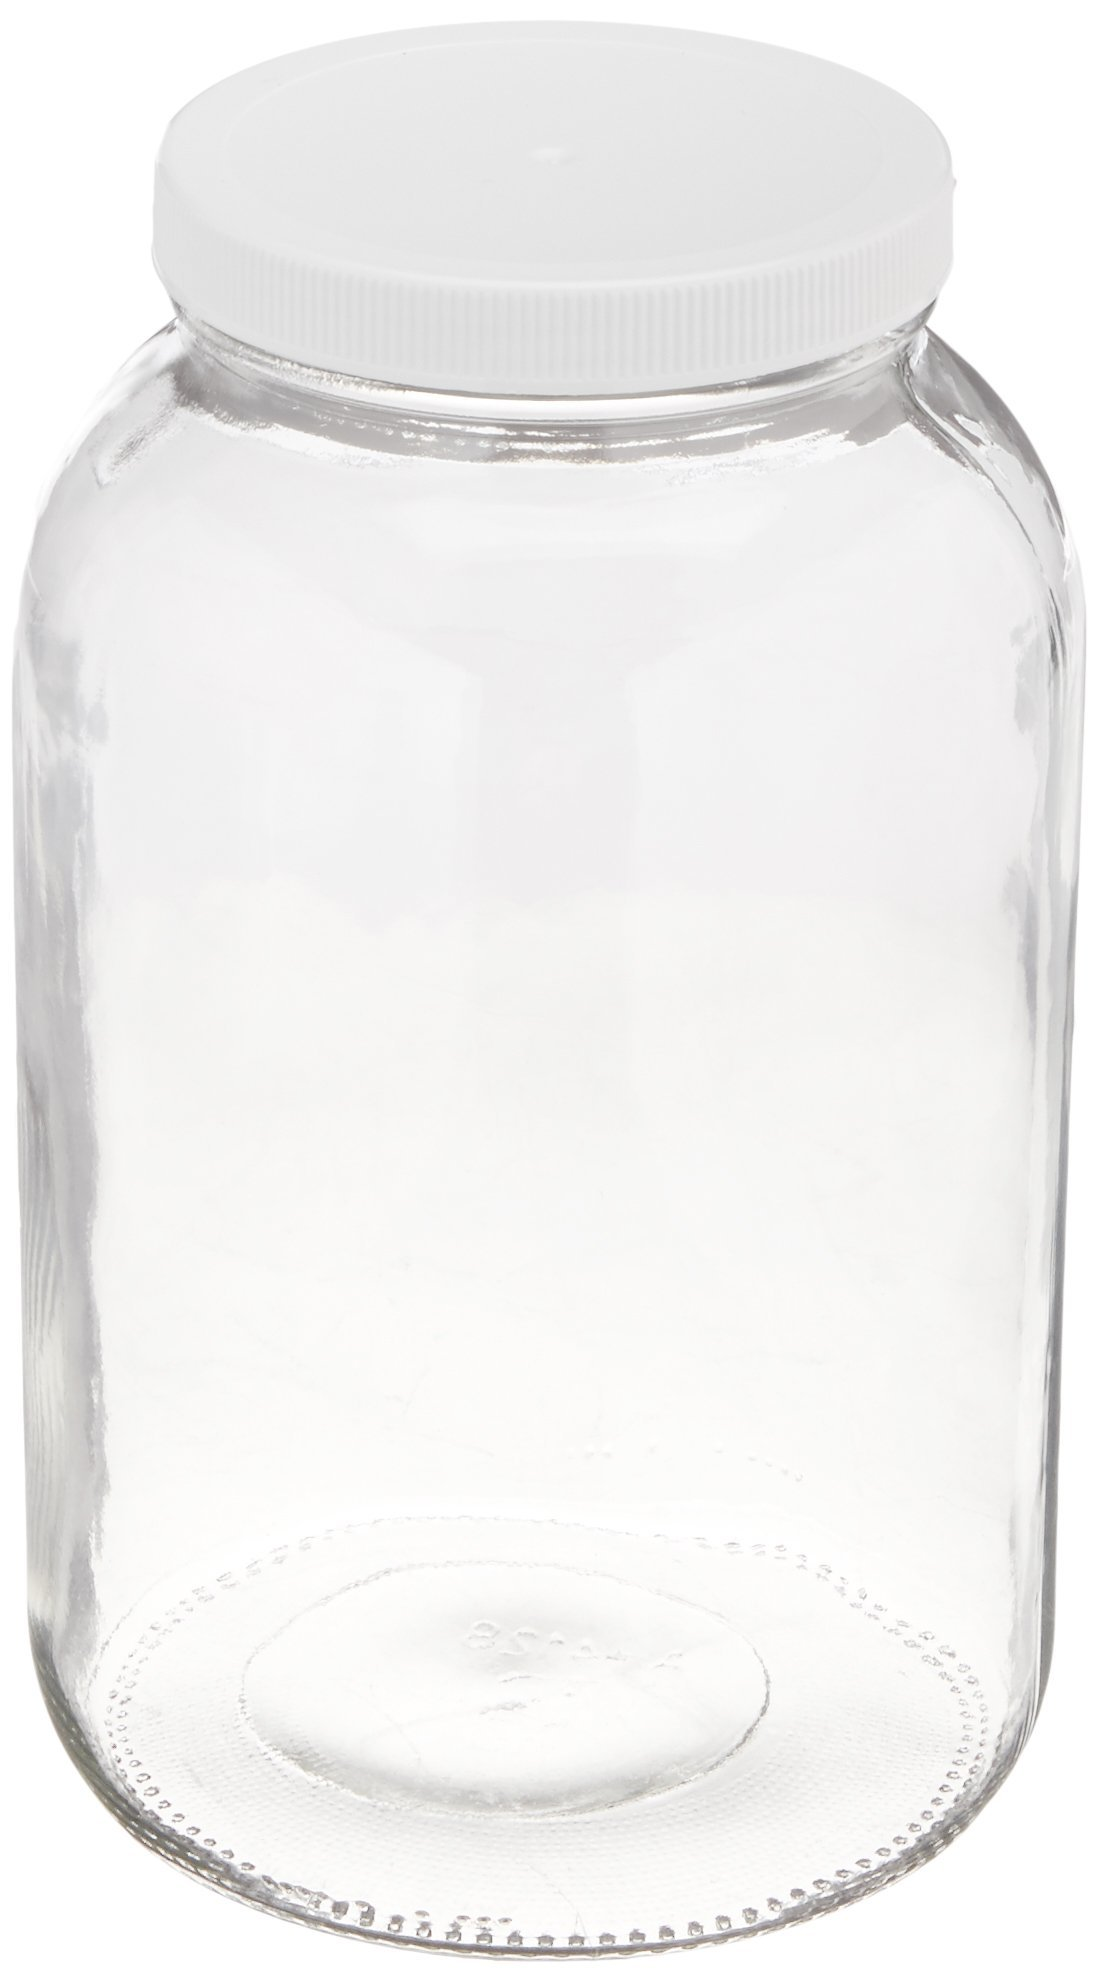 1-gallon USDA Fermentation Glass Jar by Arkansas Glass